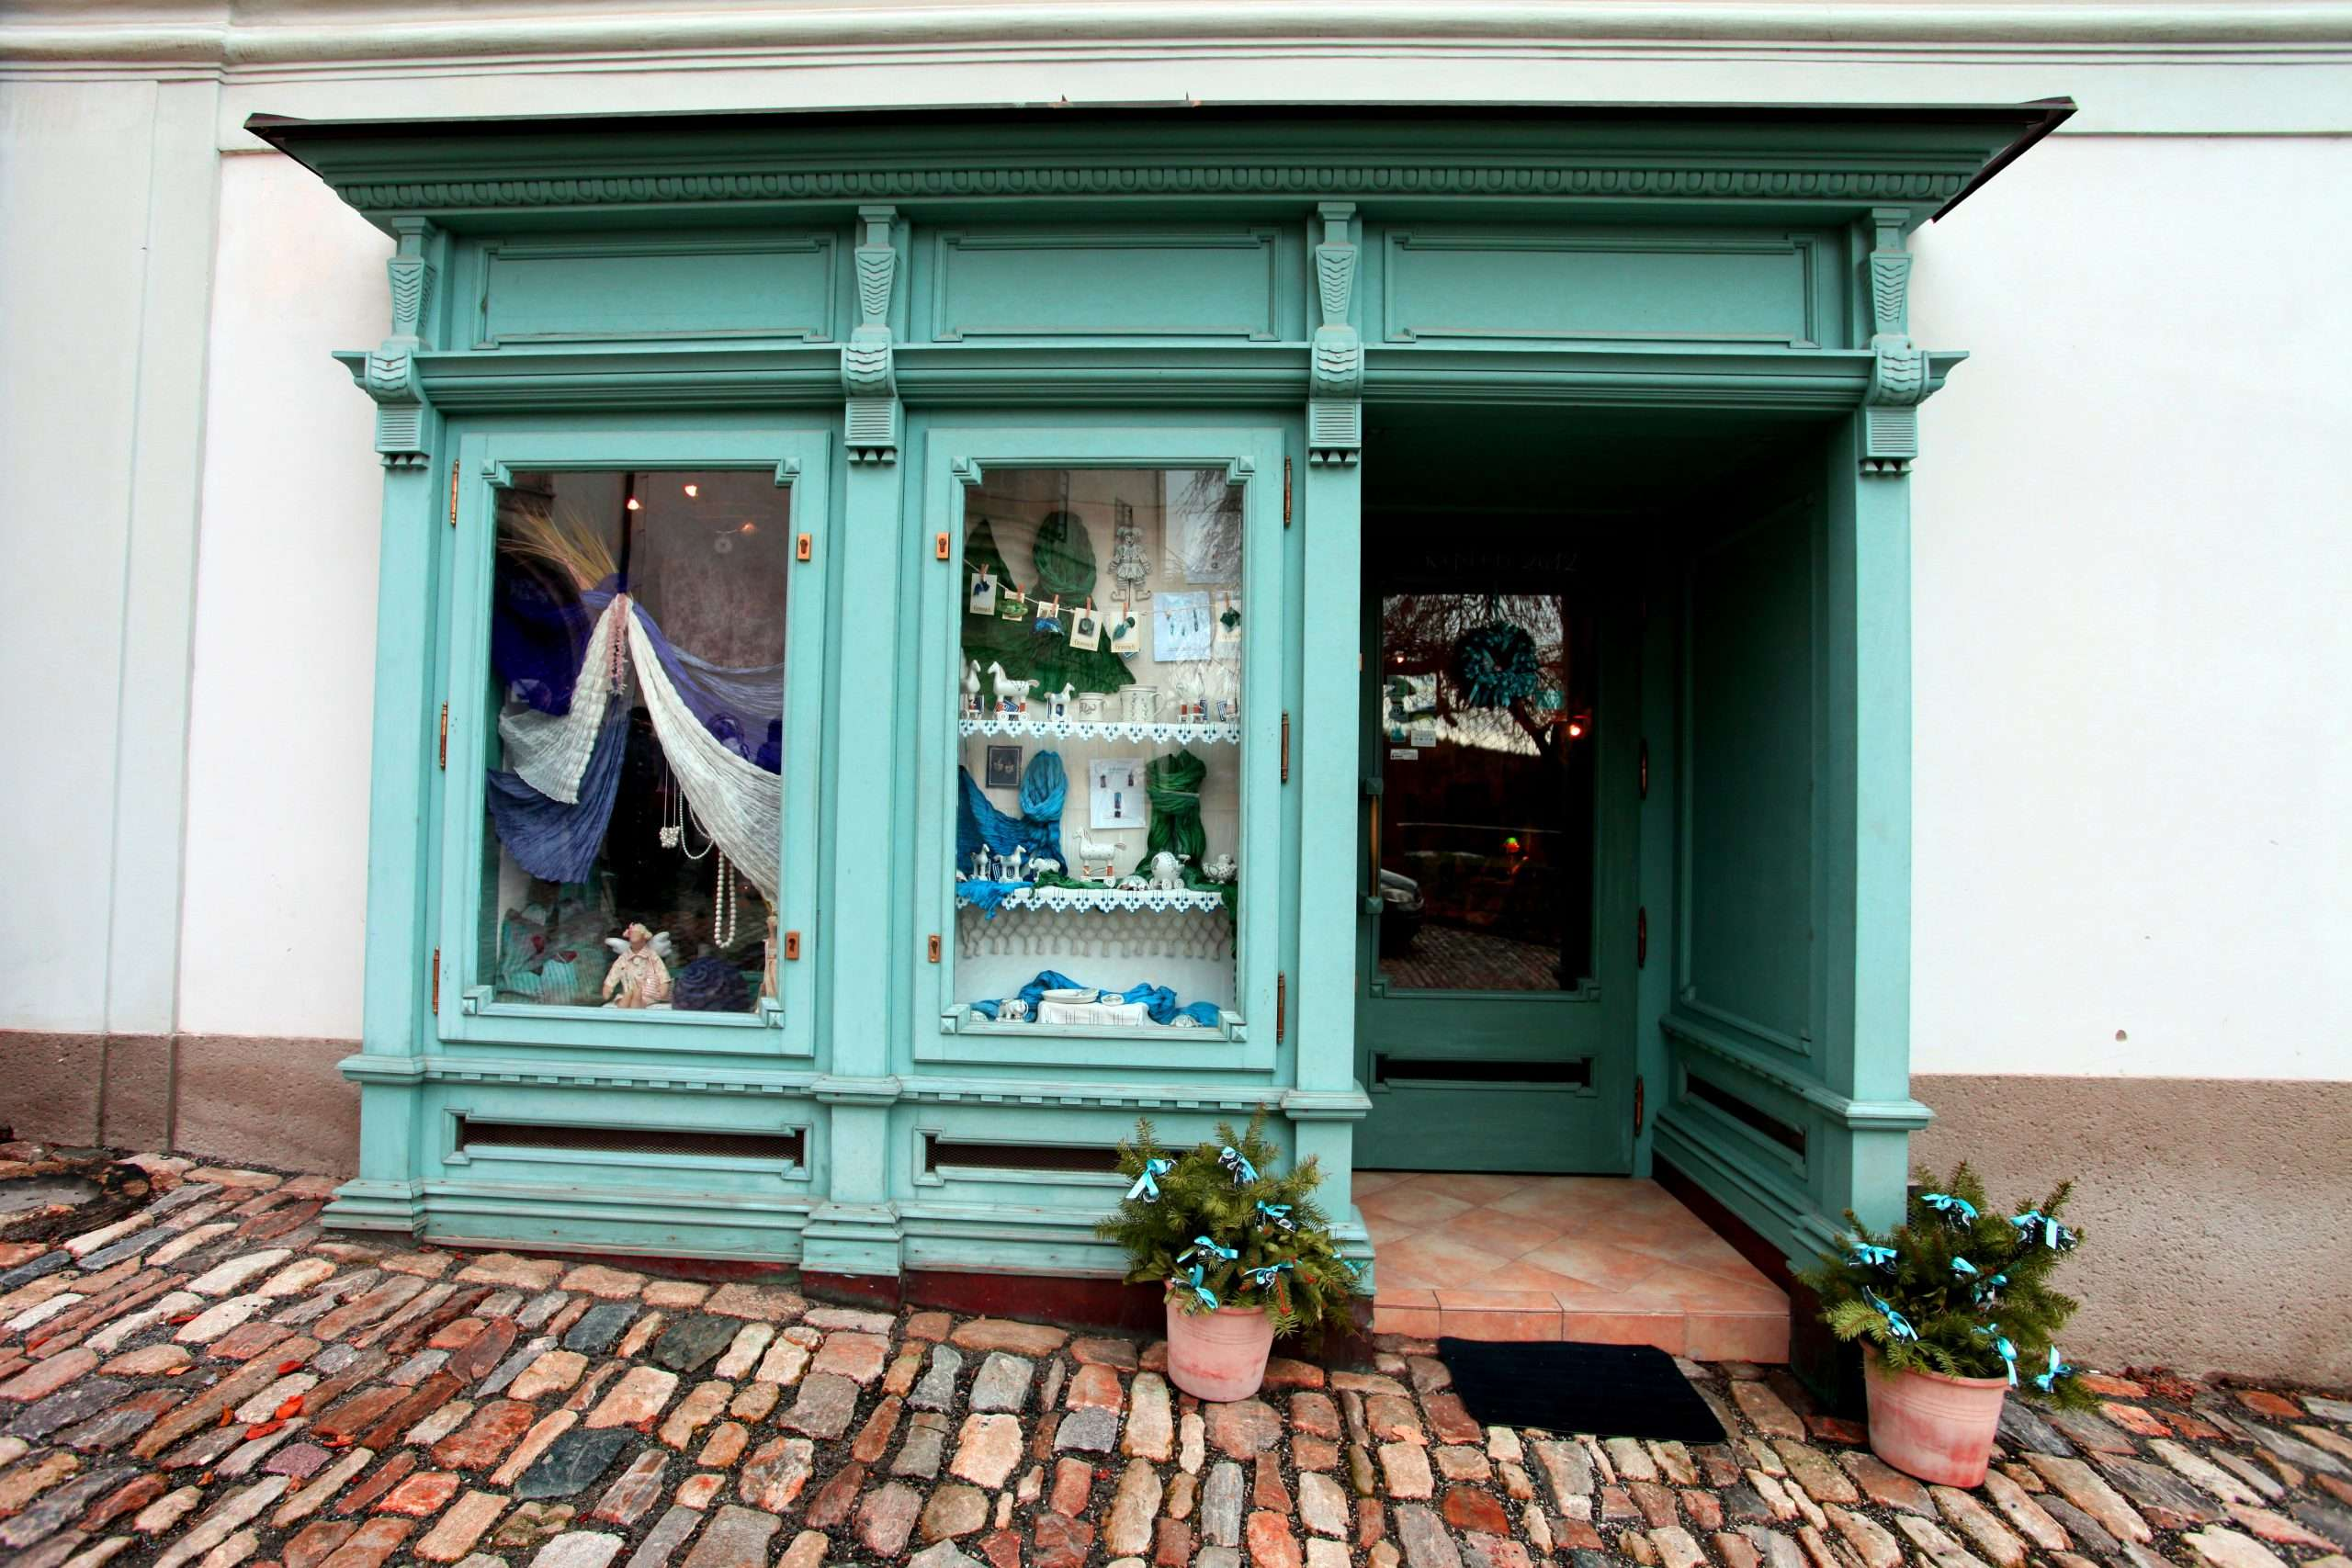 A retail storefront that may require an owner to set aside money for business construction or renovation costs